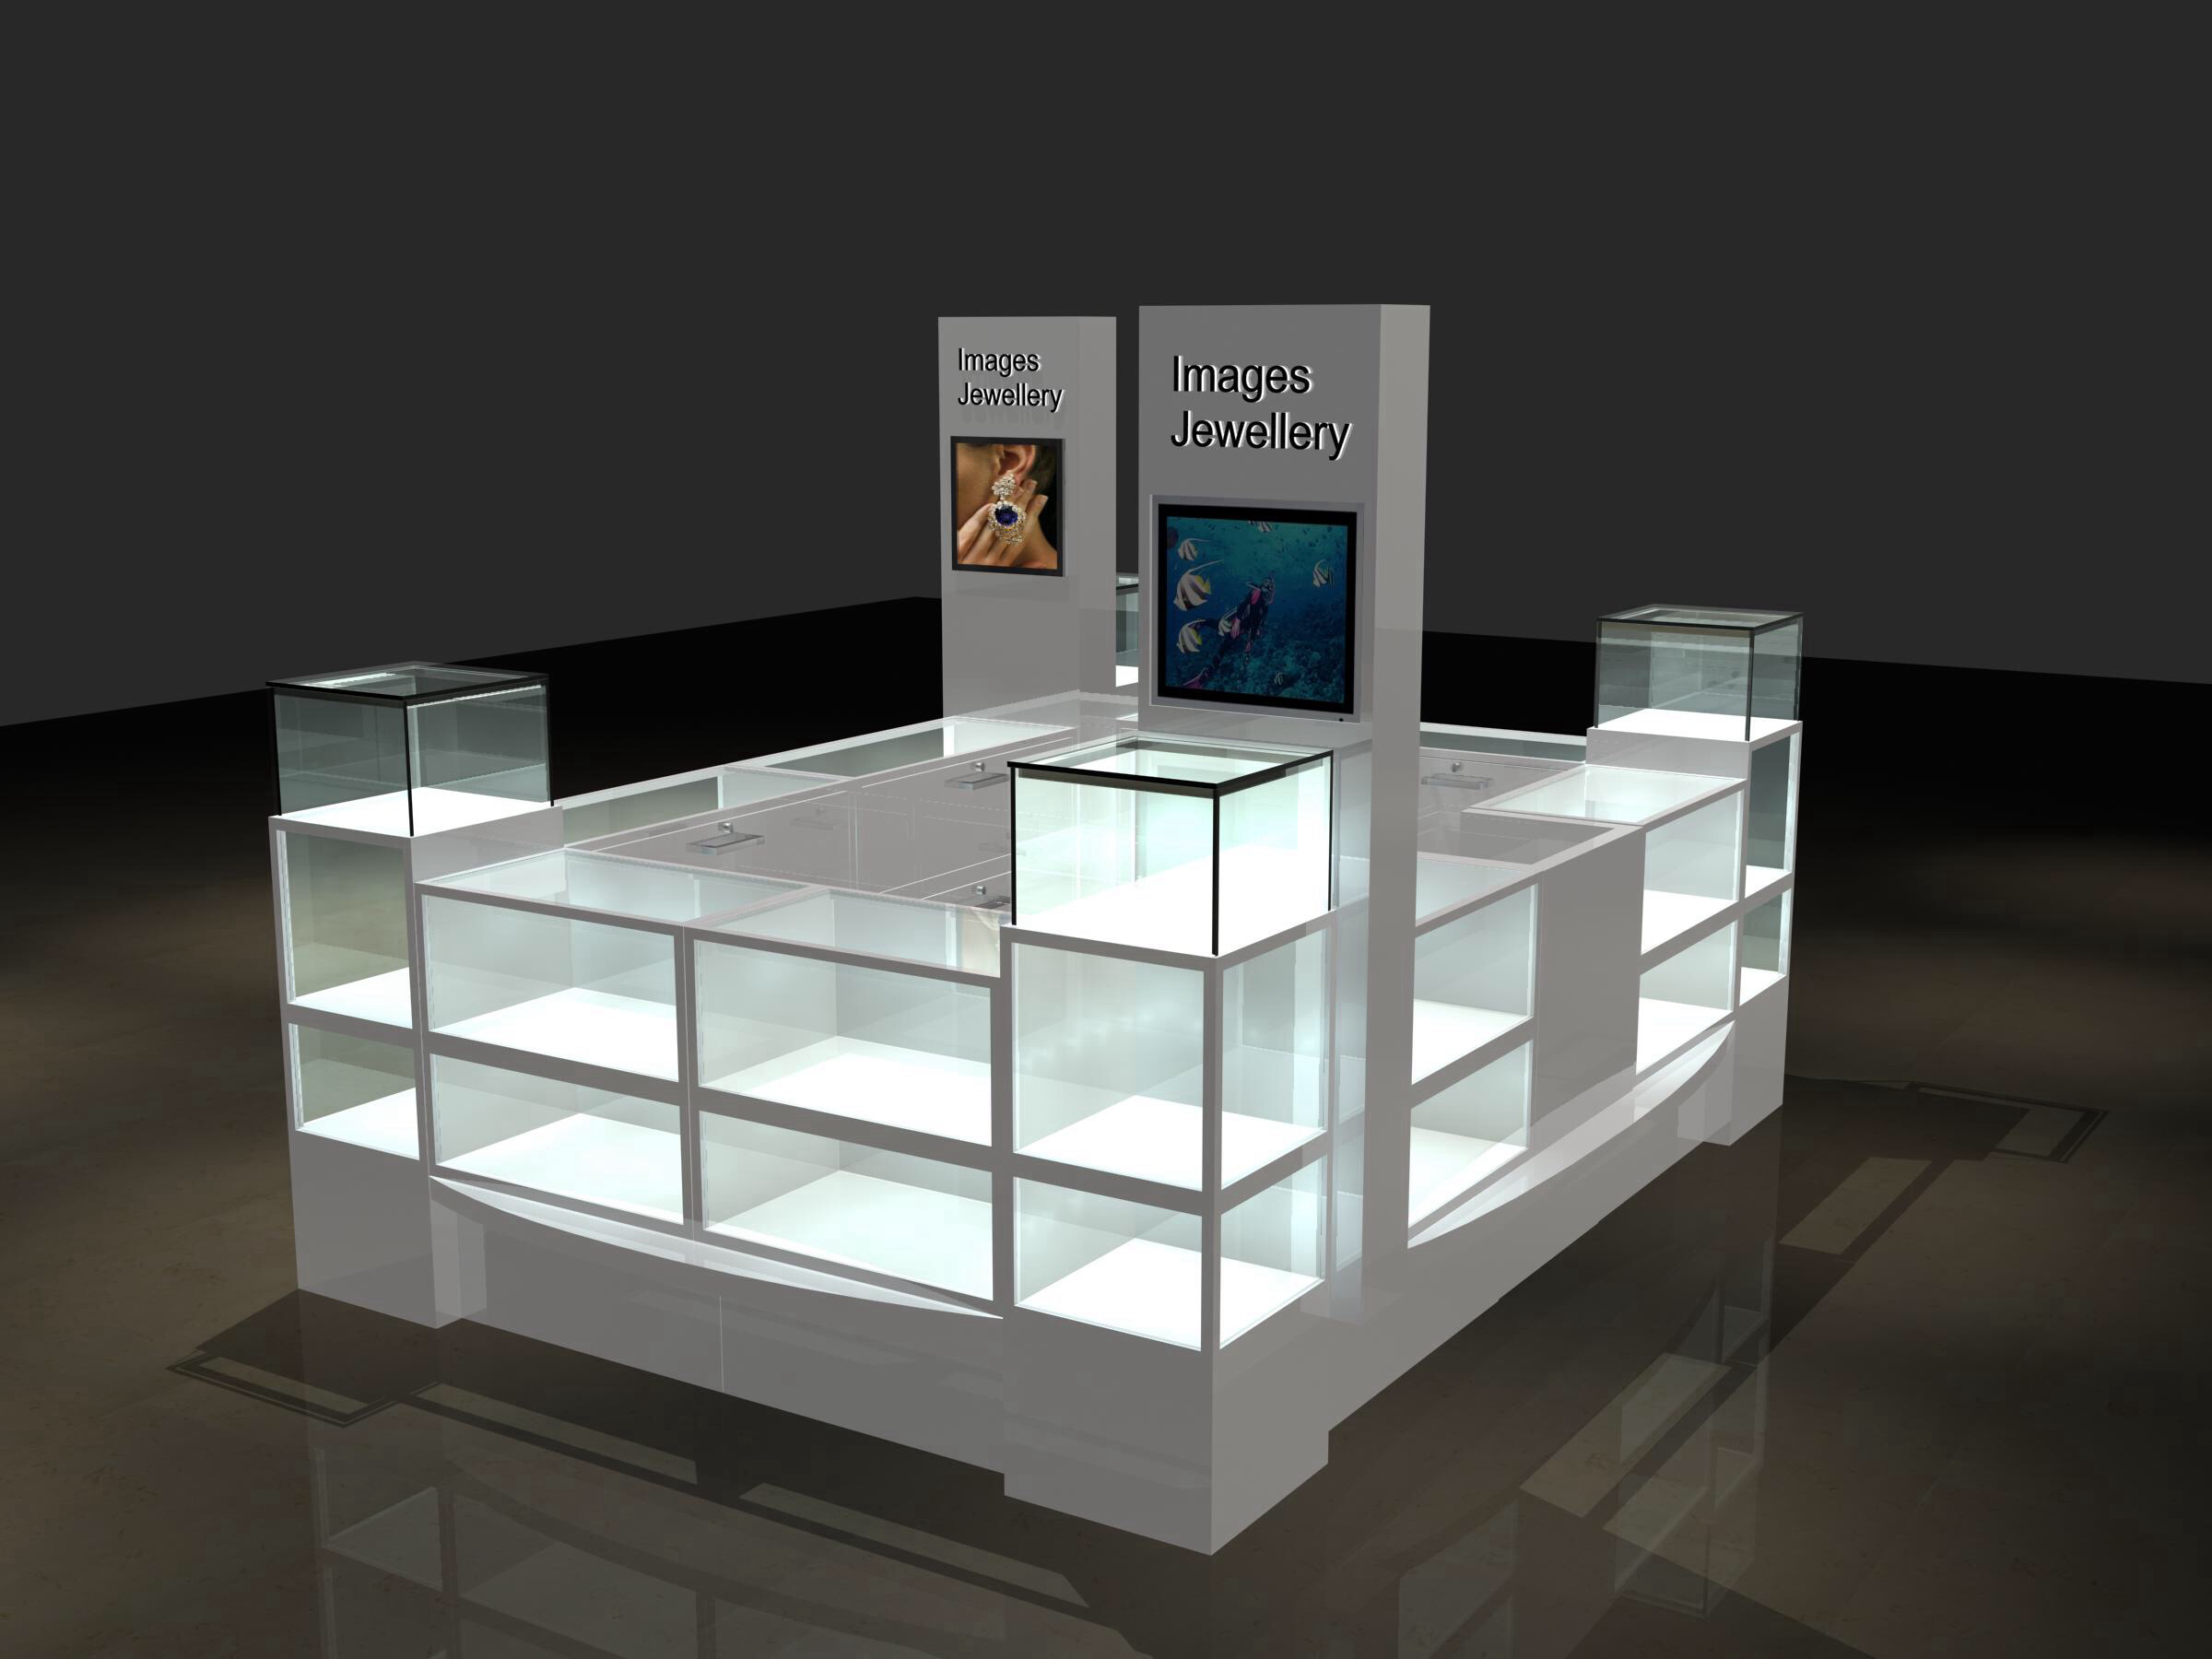 Modern Glass Jewelry Mall Kiosk Design M2display Com